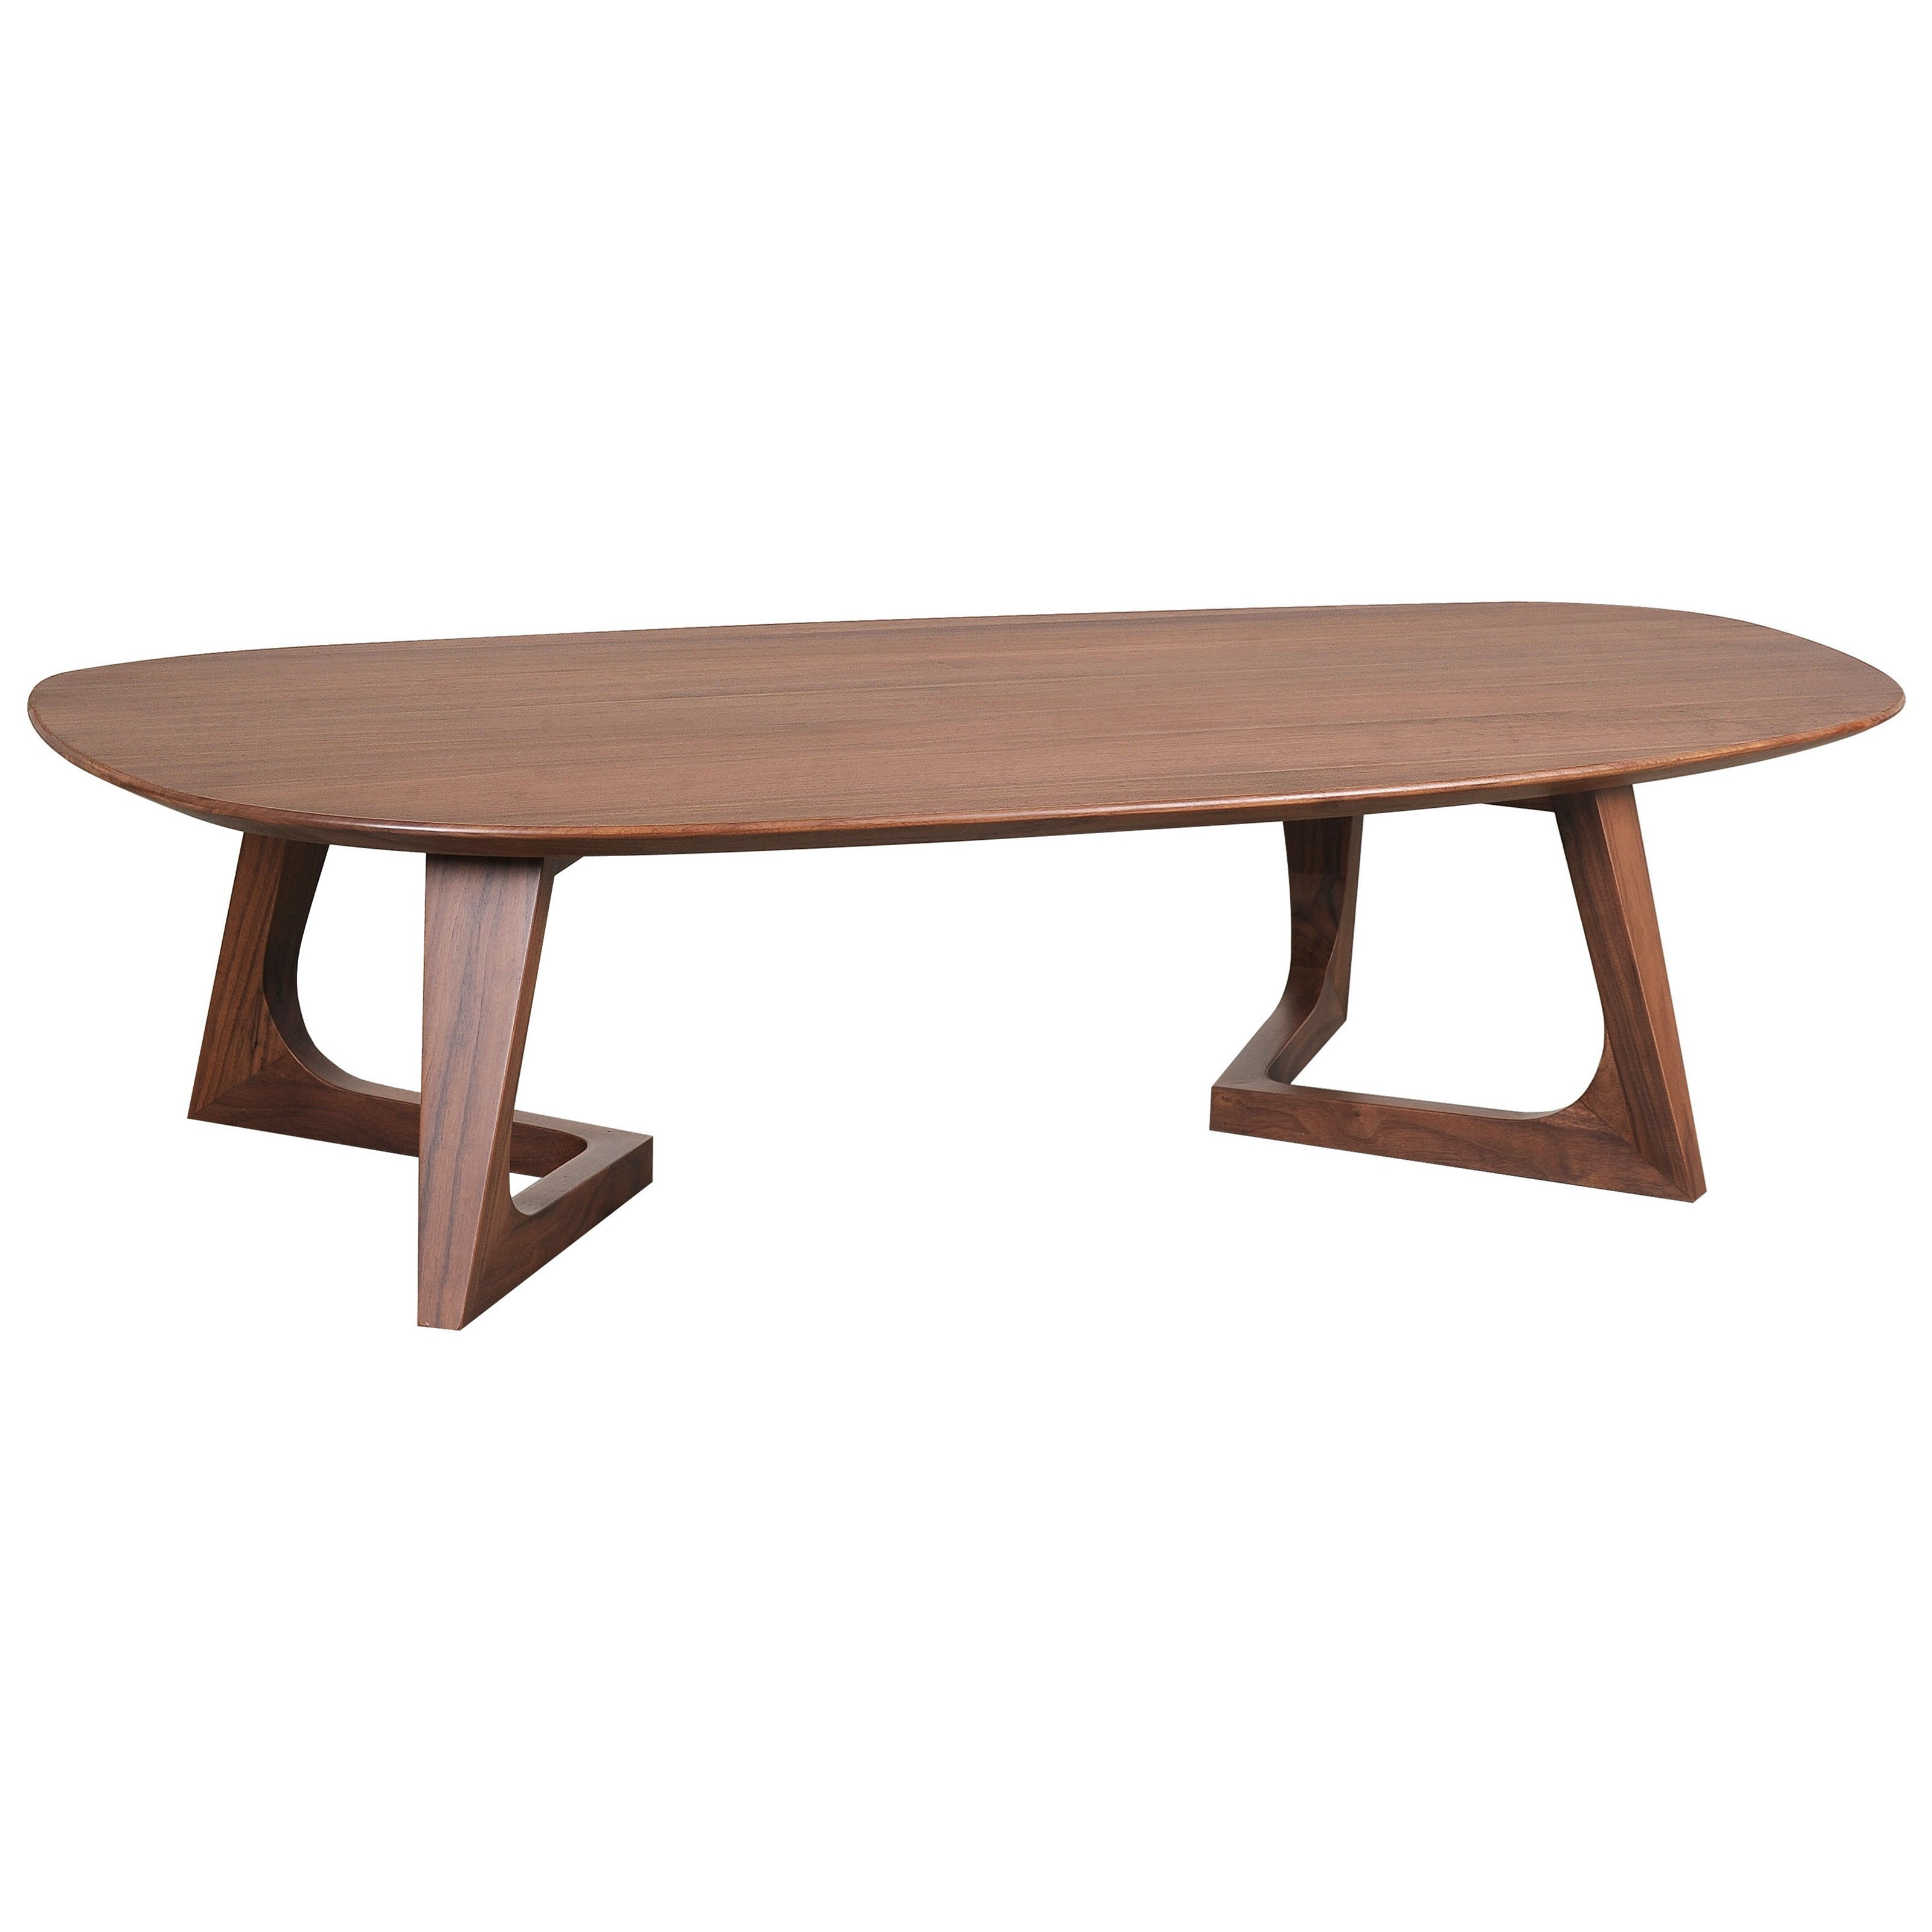 Godenza Coffee Table by Moe's Home Collection at Stoney Creek Furniture